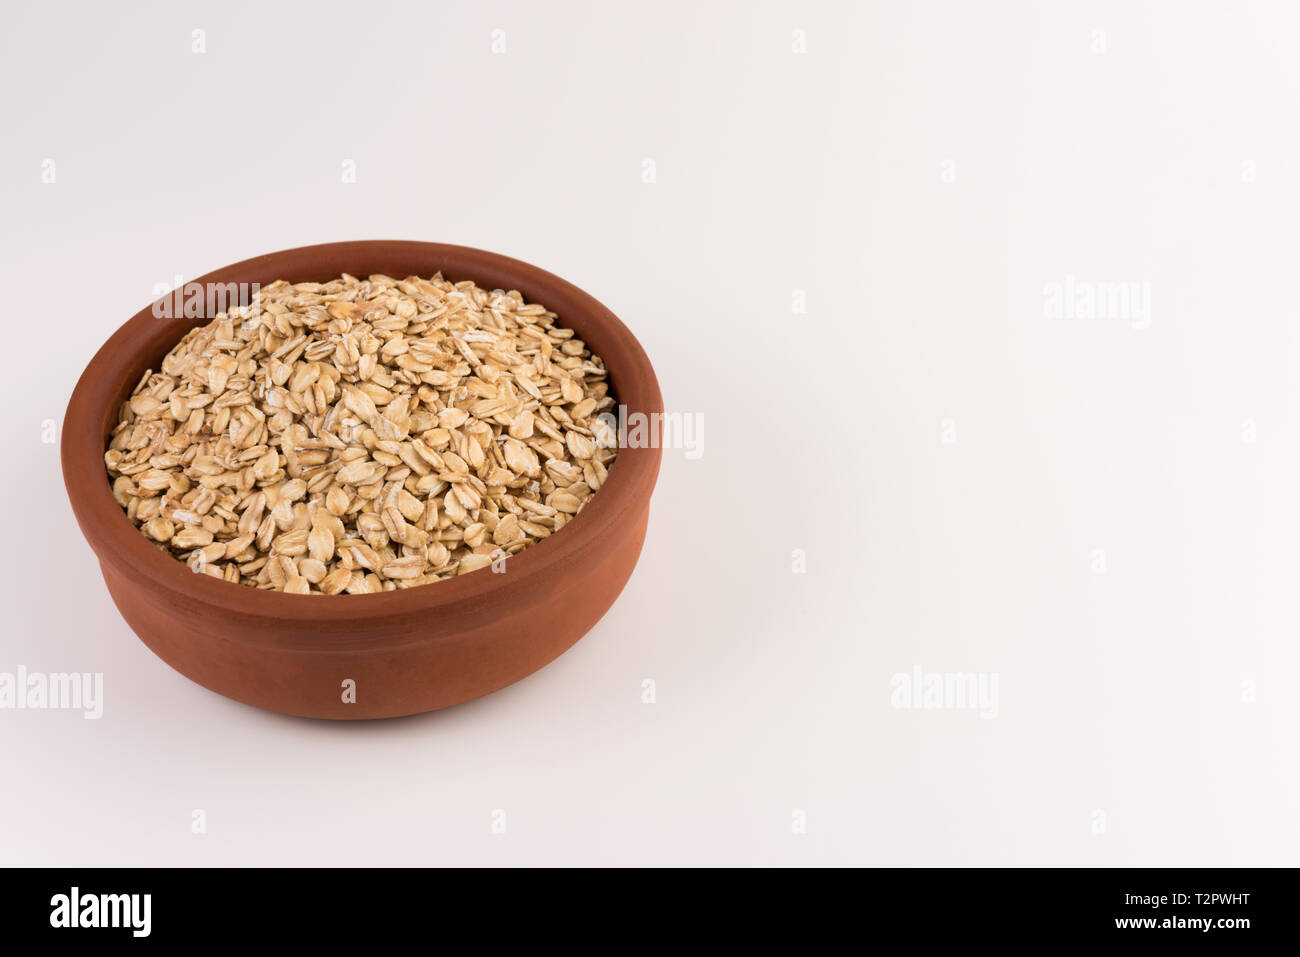 Dry rolled oatmeal in bowl isolated on white background. Stock Photo